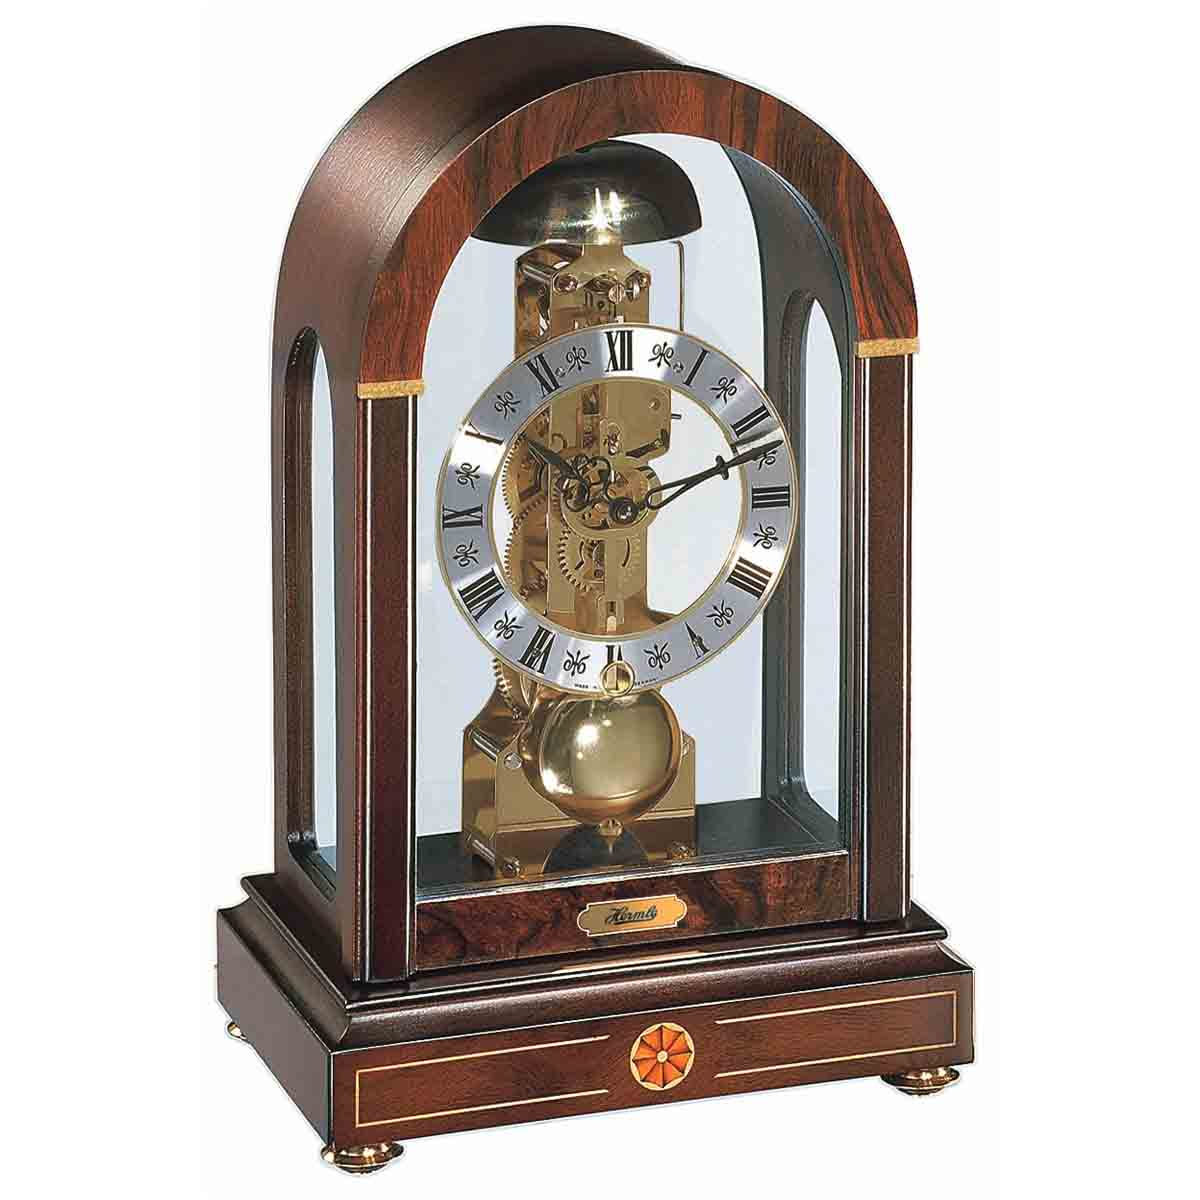 STRATFORD 22712 030791 Mantel Table Clock